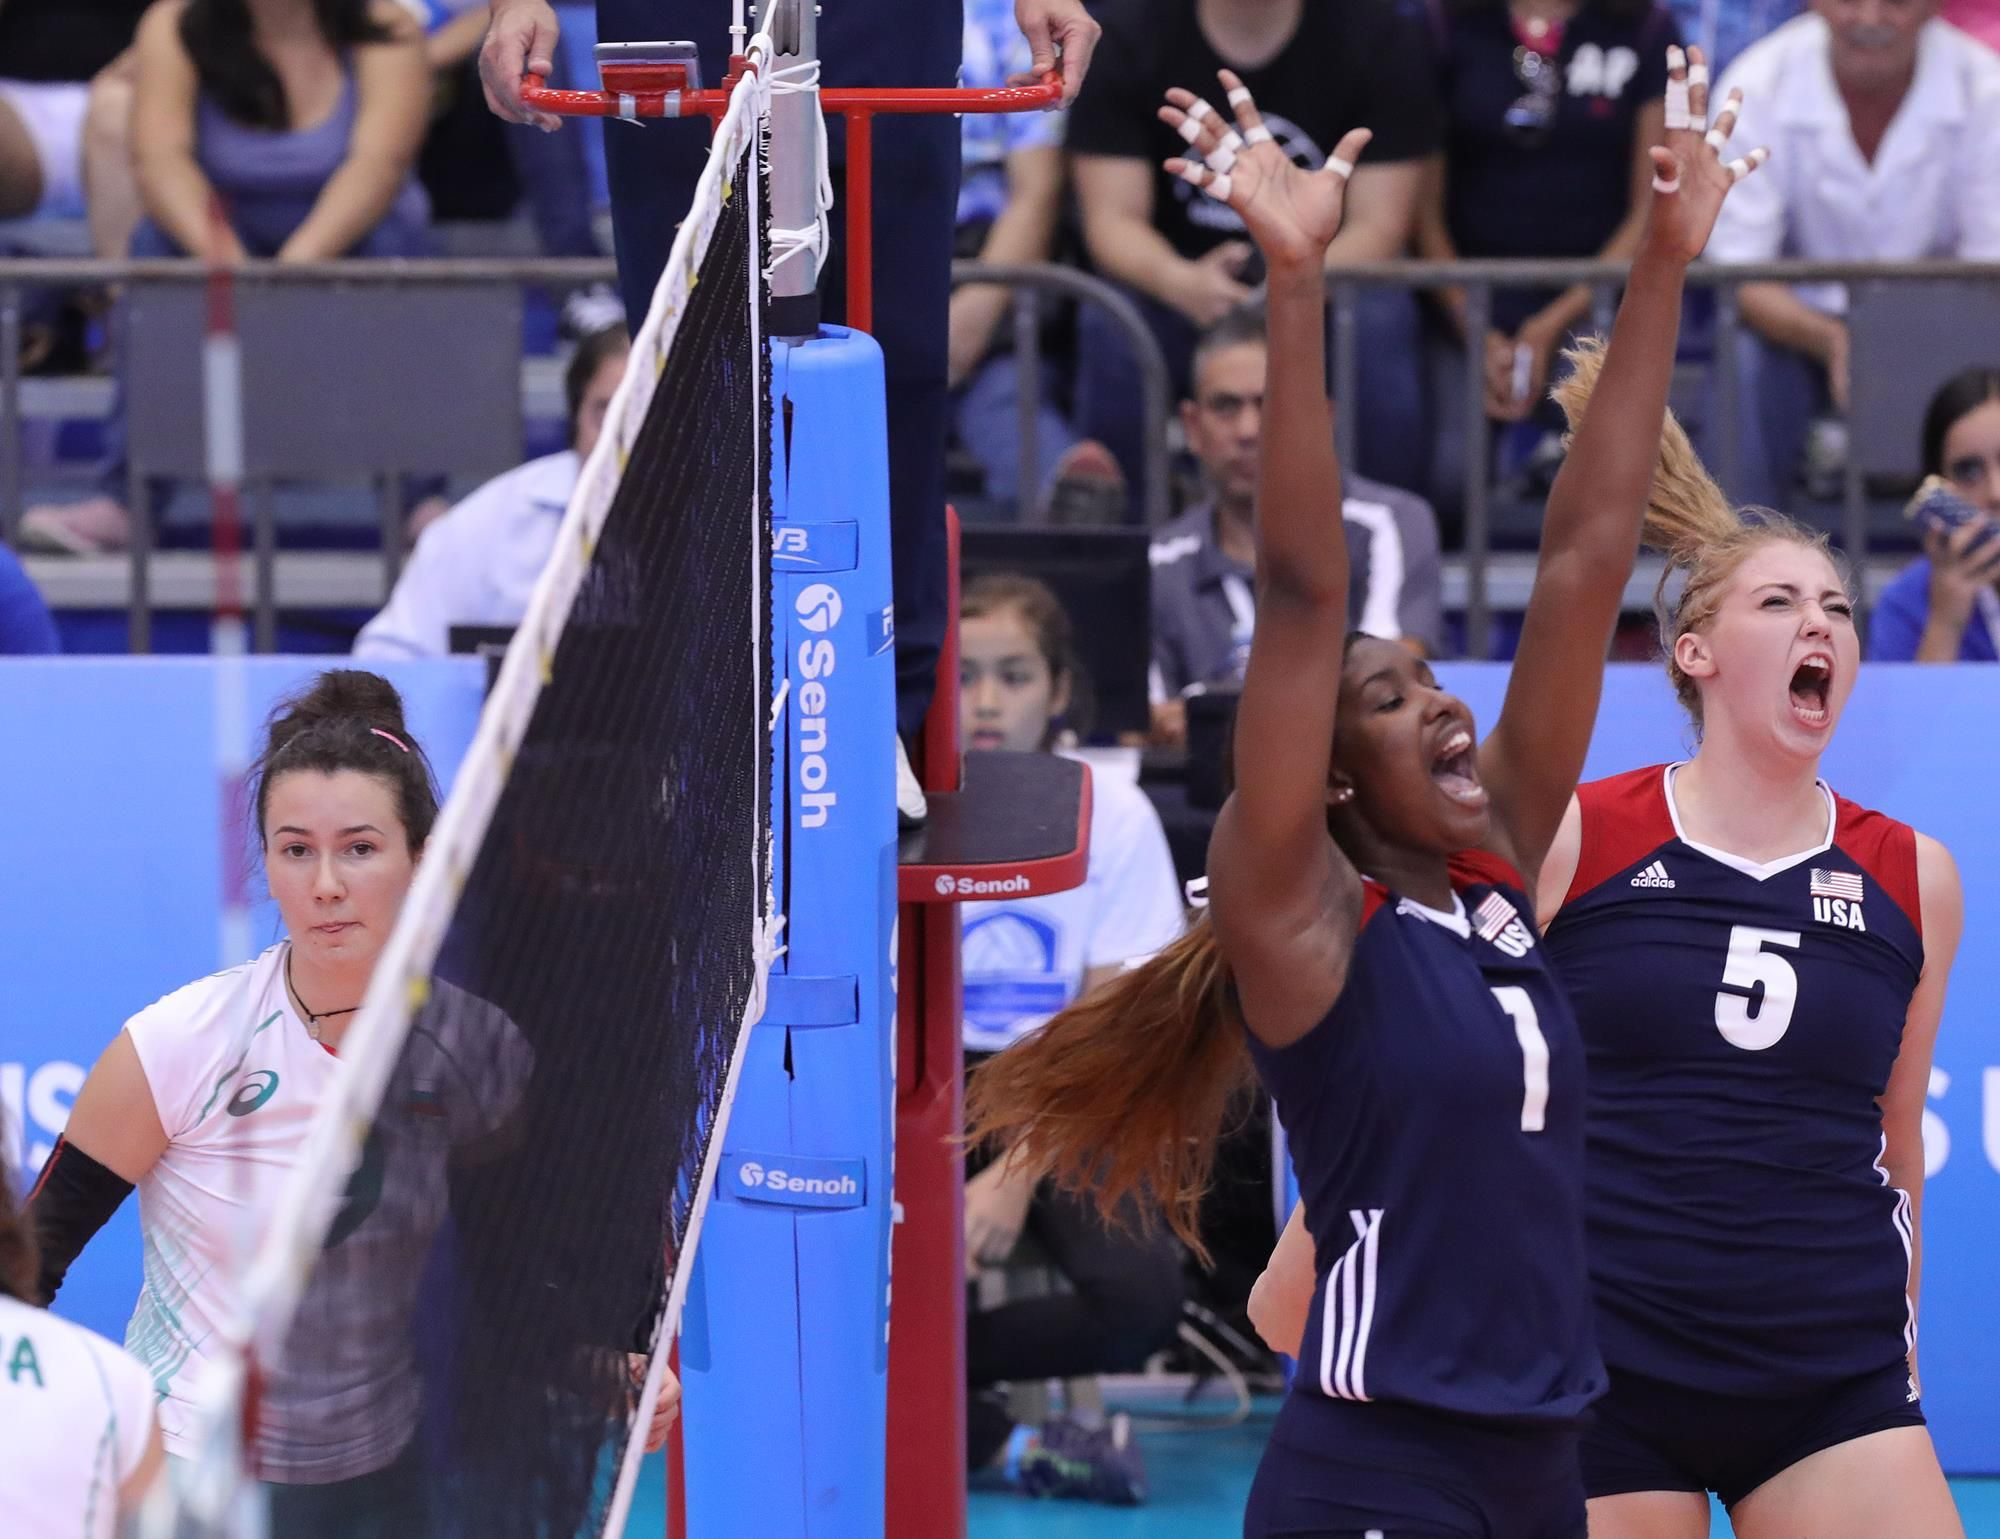 Volleyball S Butler Leads U S To Victory To Close World Championships University Of Texas Athletics Volleyball News World Championship Volleyballs